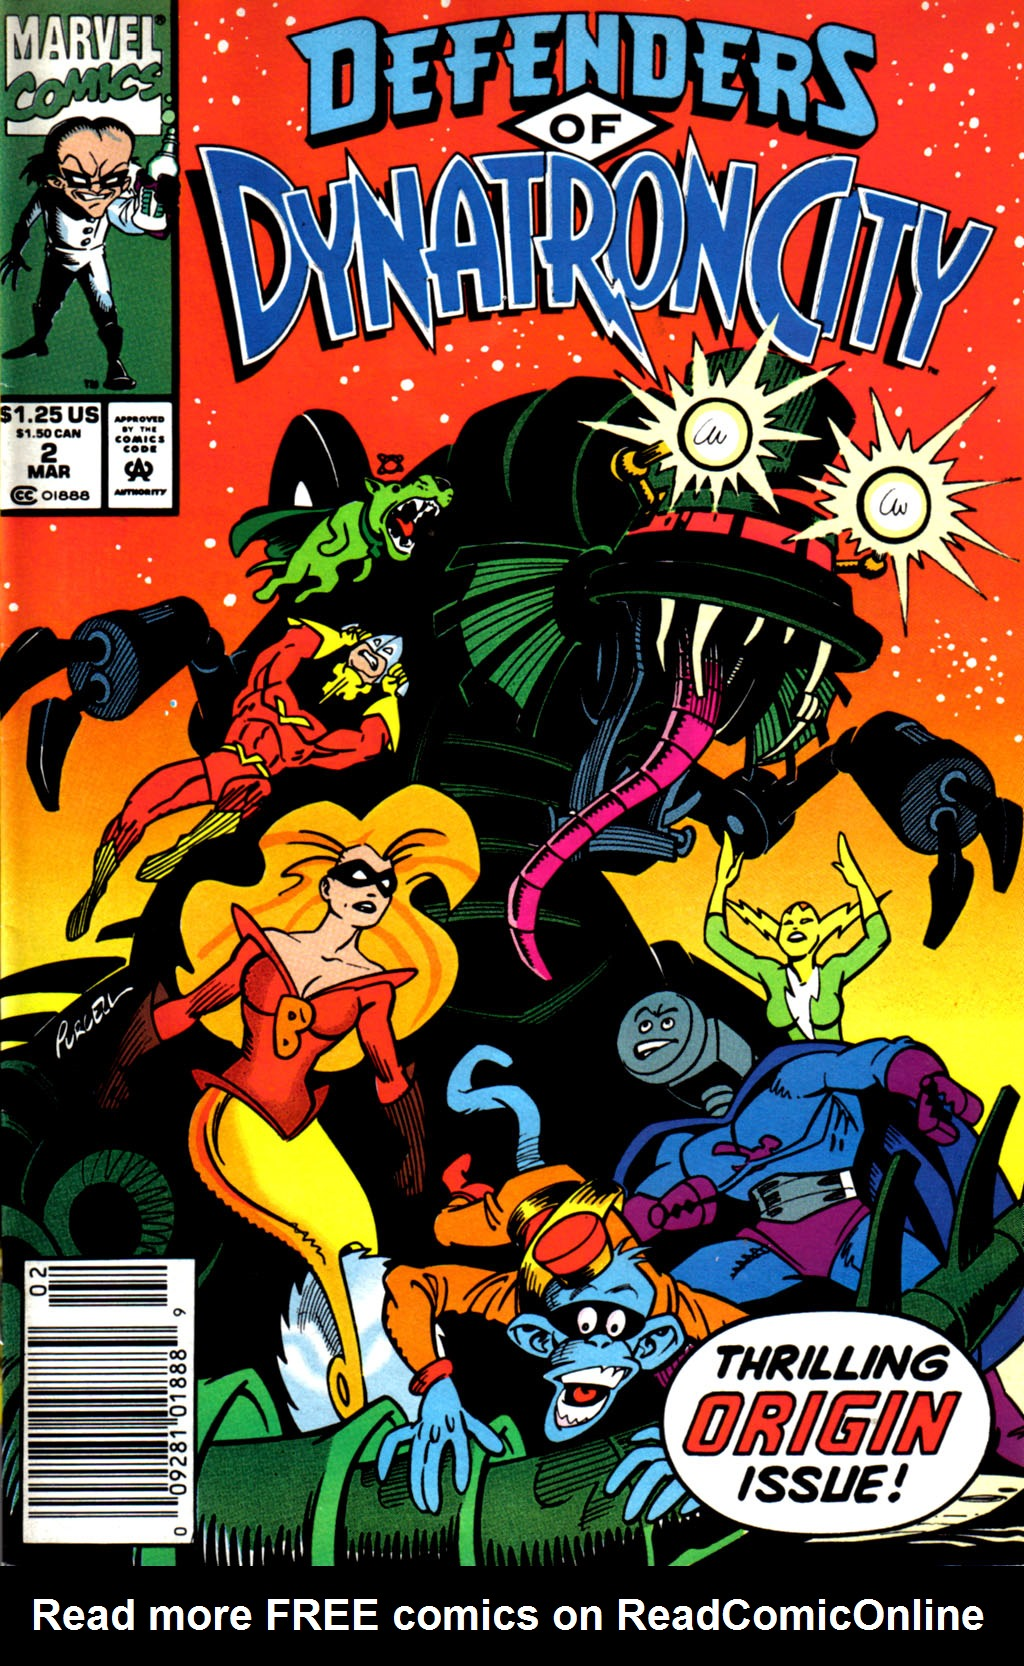 Read online Defenders of Dynatron City comic -  Issue #2 - 1